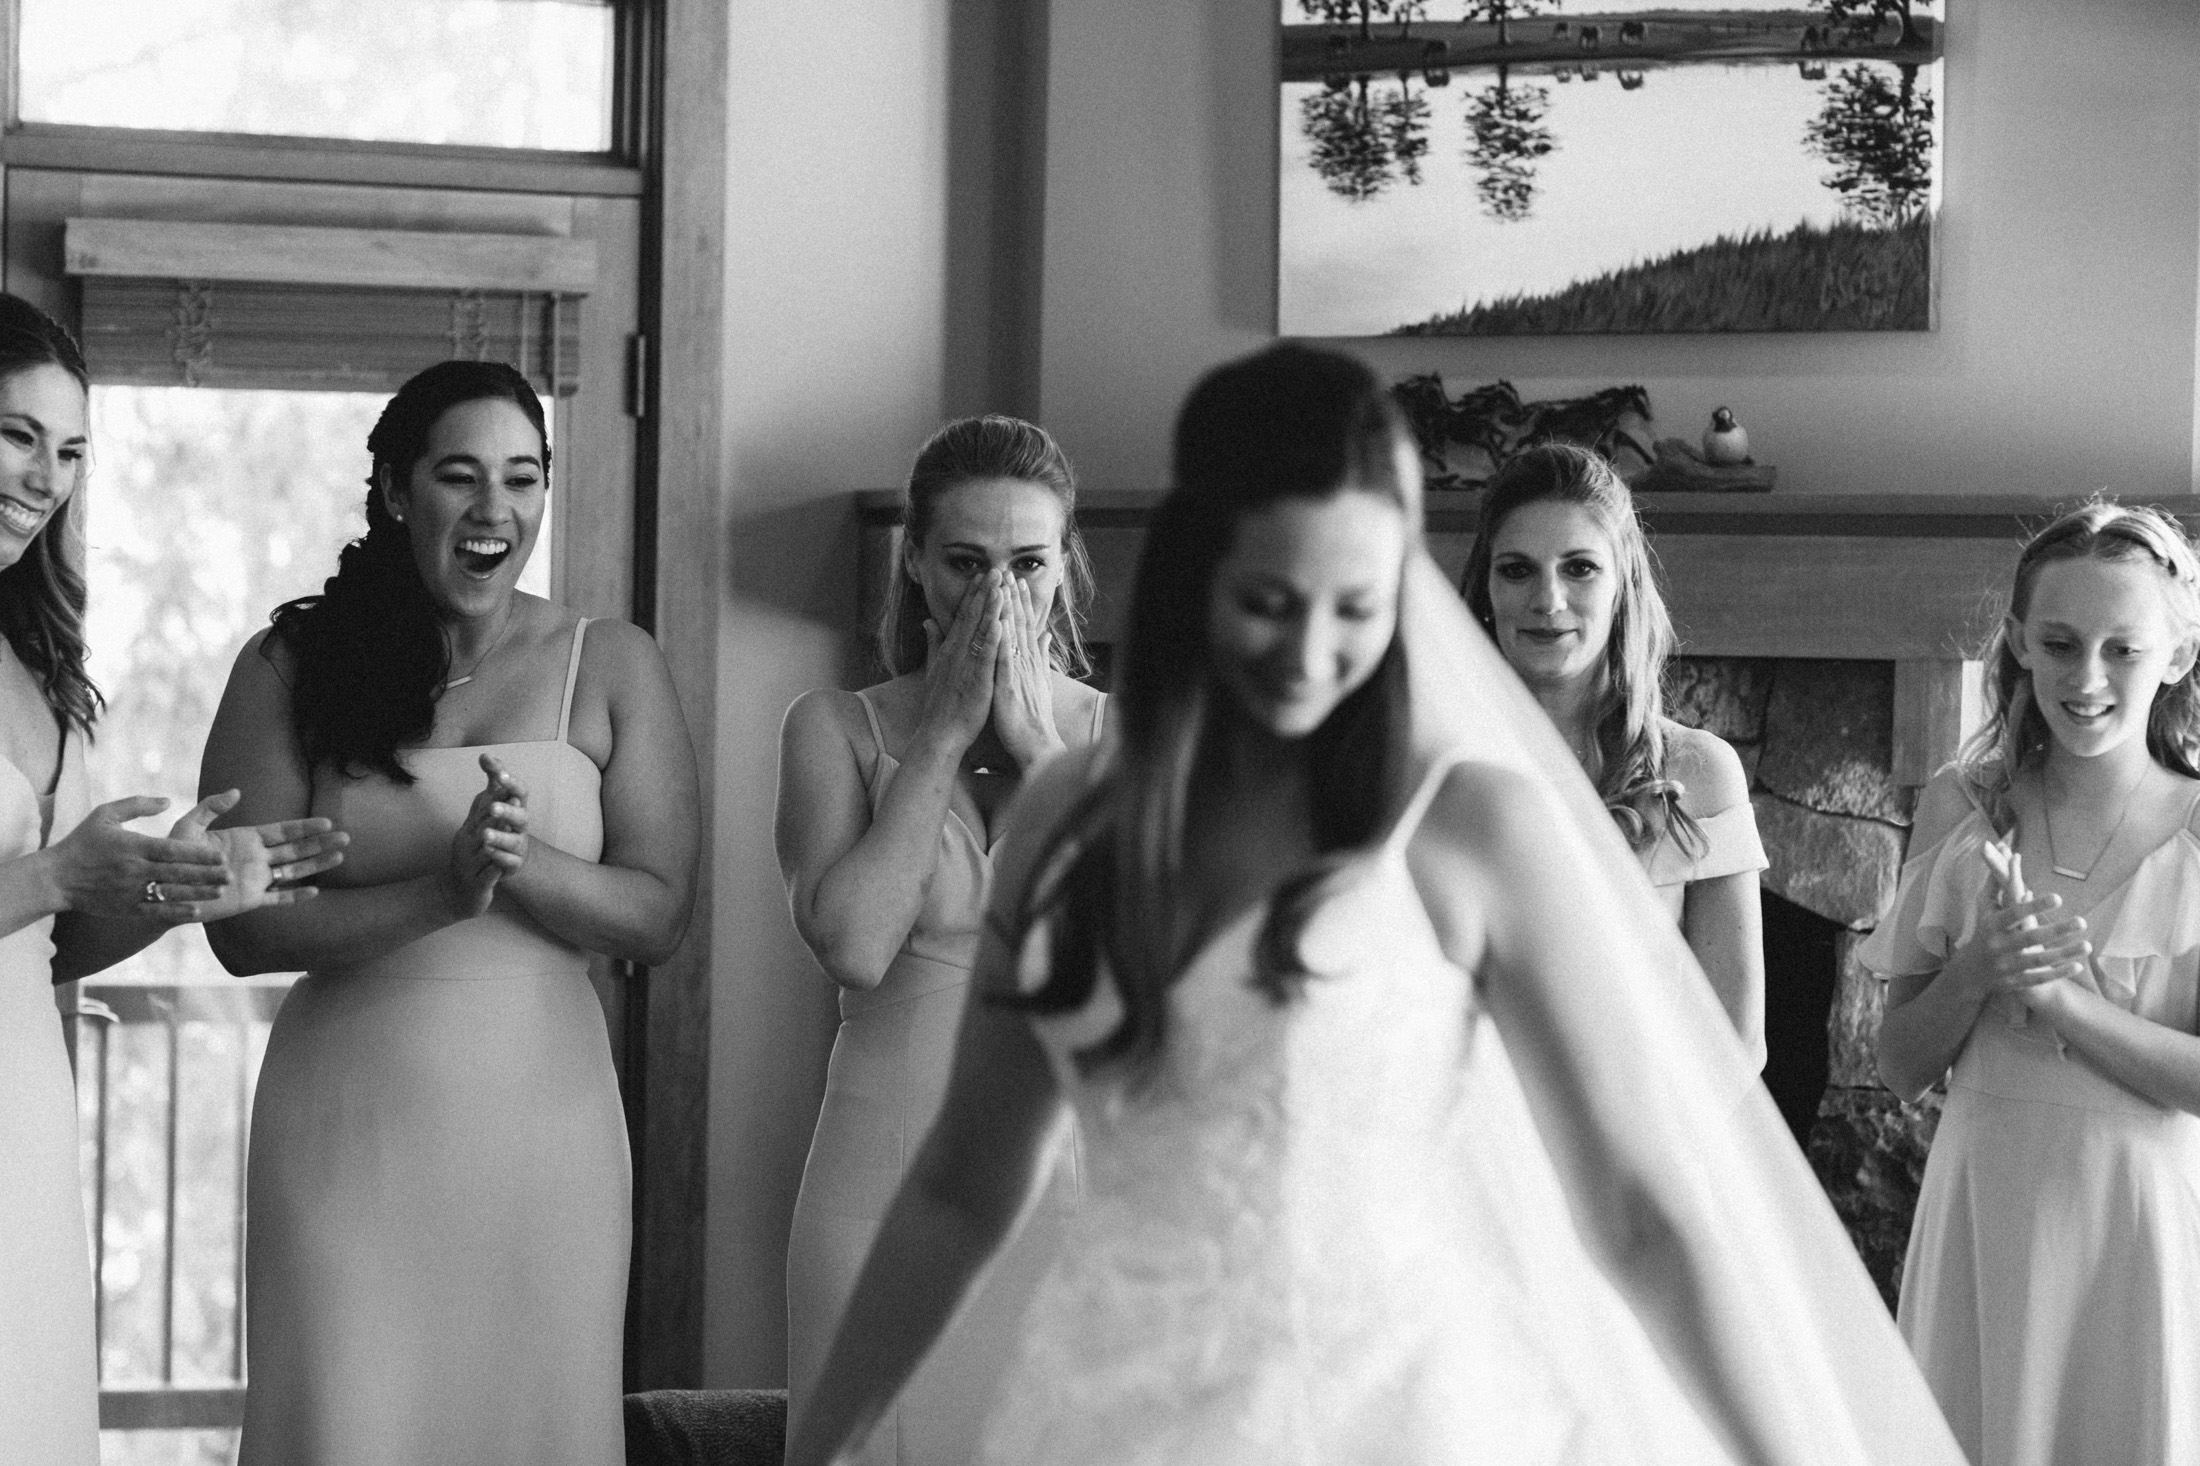 Black and white photo of bridesmaids react to bride in wedding dress.